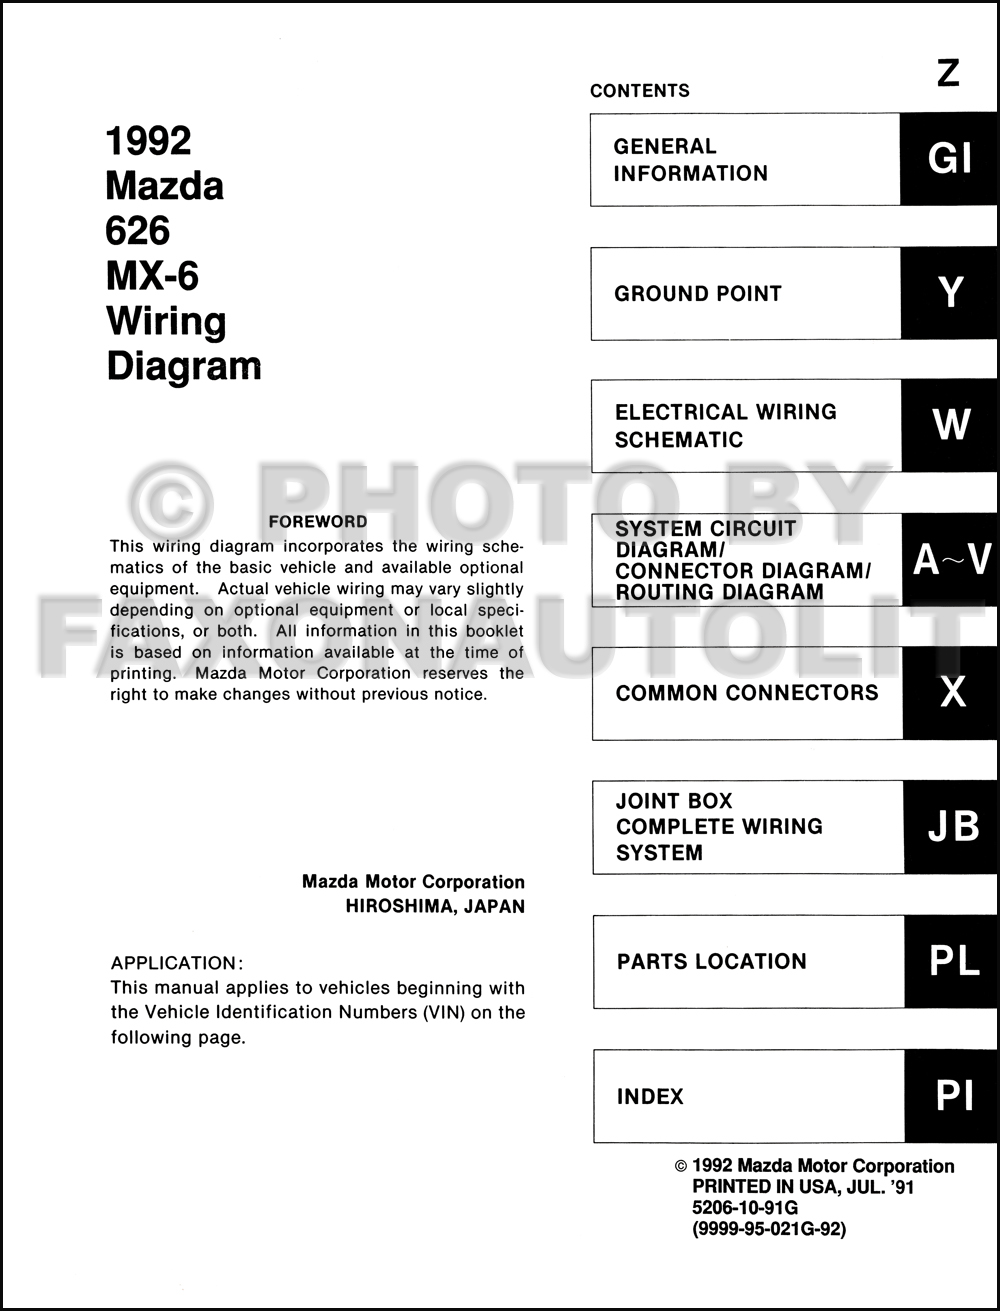 1992 Mazda 626 and MX-6 Wiring Diagram Manual Original